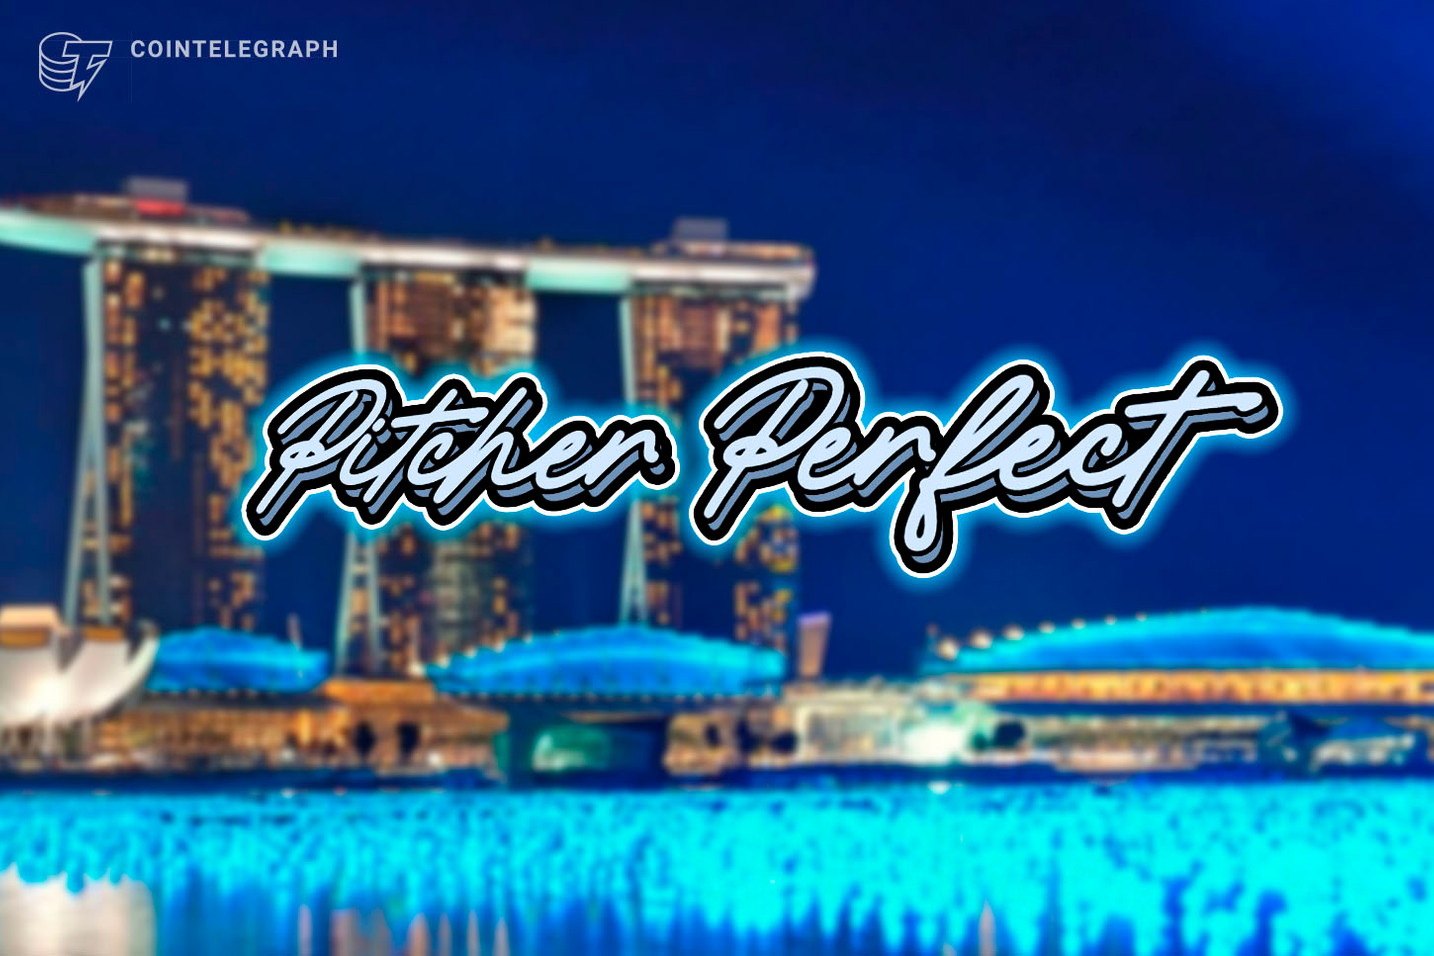 UCIM Pitcher Perfect to Welcome Top Investors and Projects in Singapore